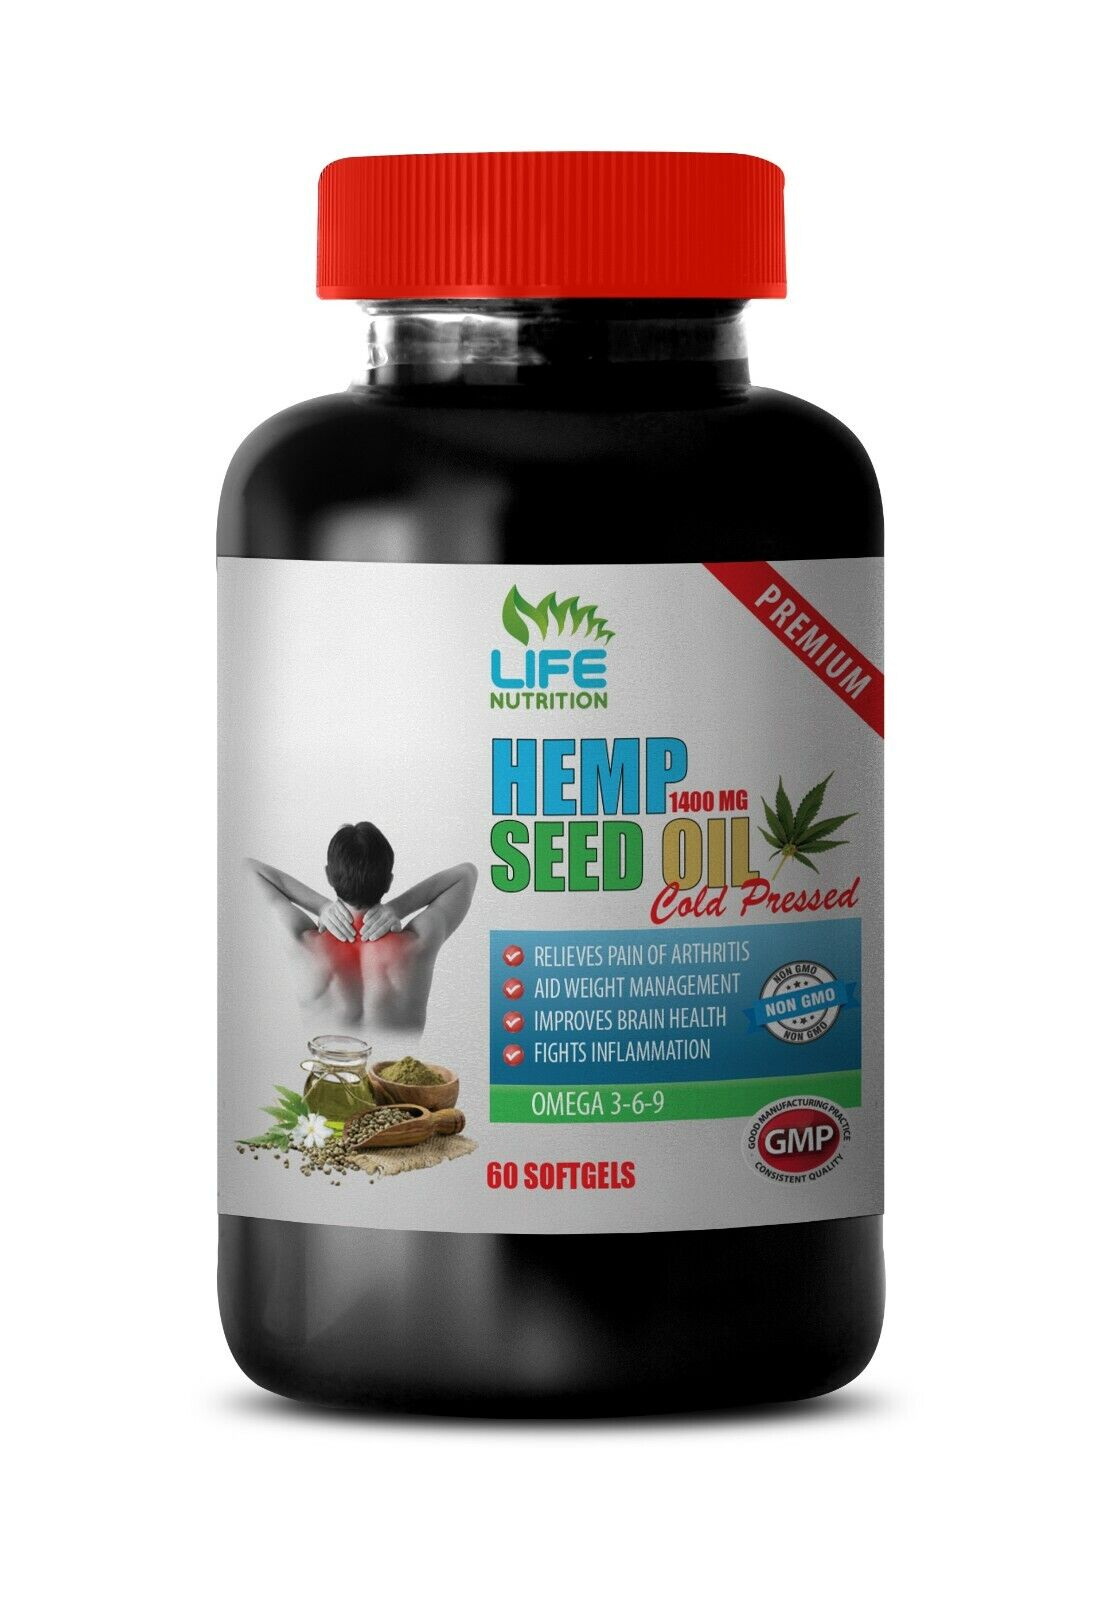 soothe inflammation in joints, ORGANIC HEMP SEED OIL 1400mg, joint pain relief 1